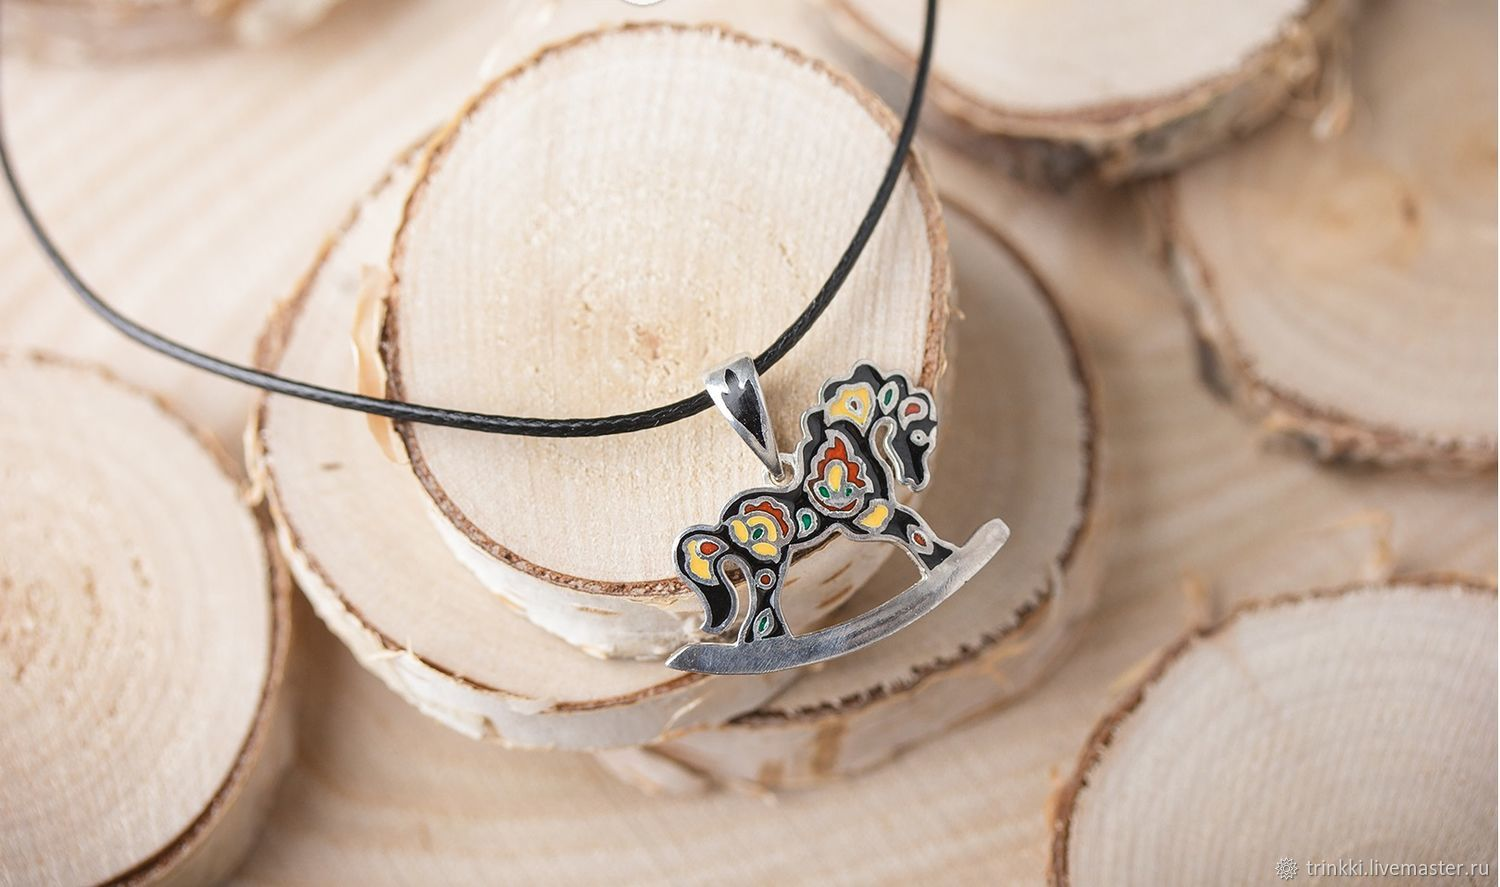 Horse pendant in sterling silver in the Russian style with enamel and a pattern Khokhloma